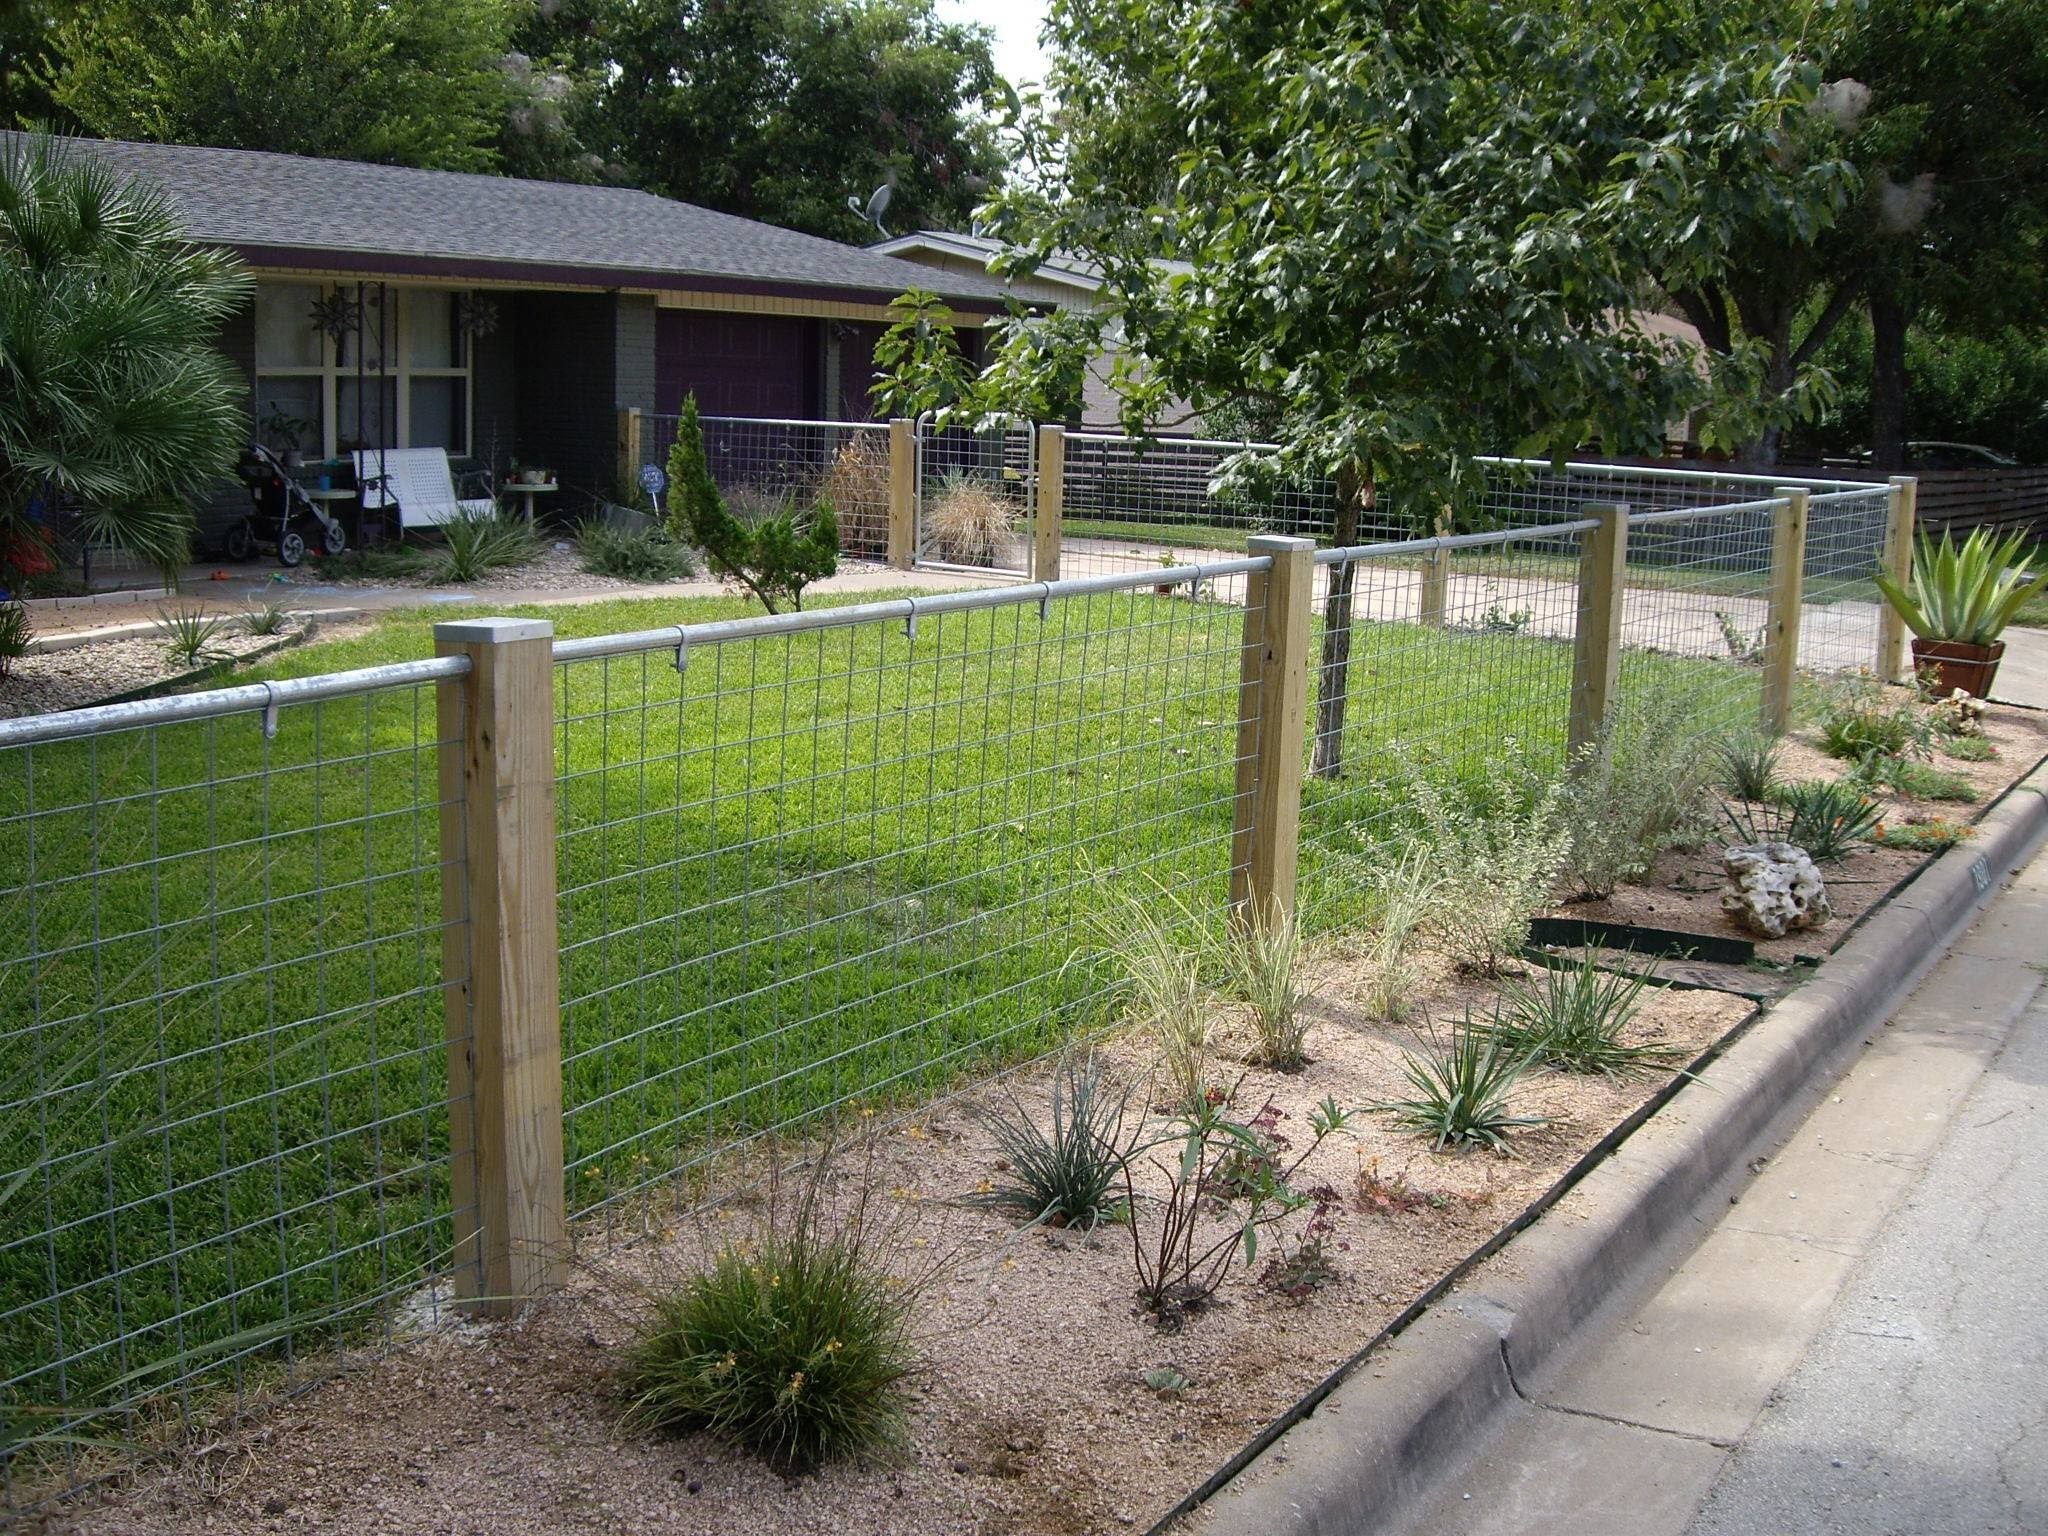 Best 25+ Wire fence panels ideas on Pinterest | Wire fence, Welded ...